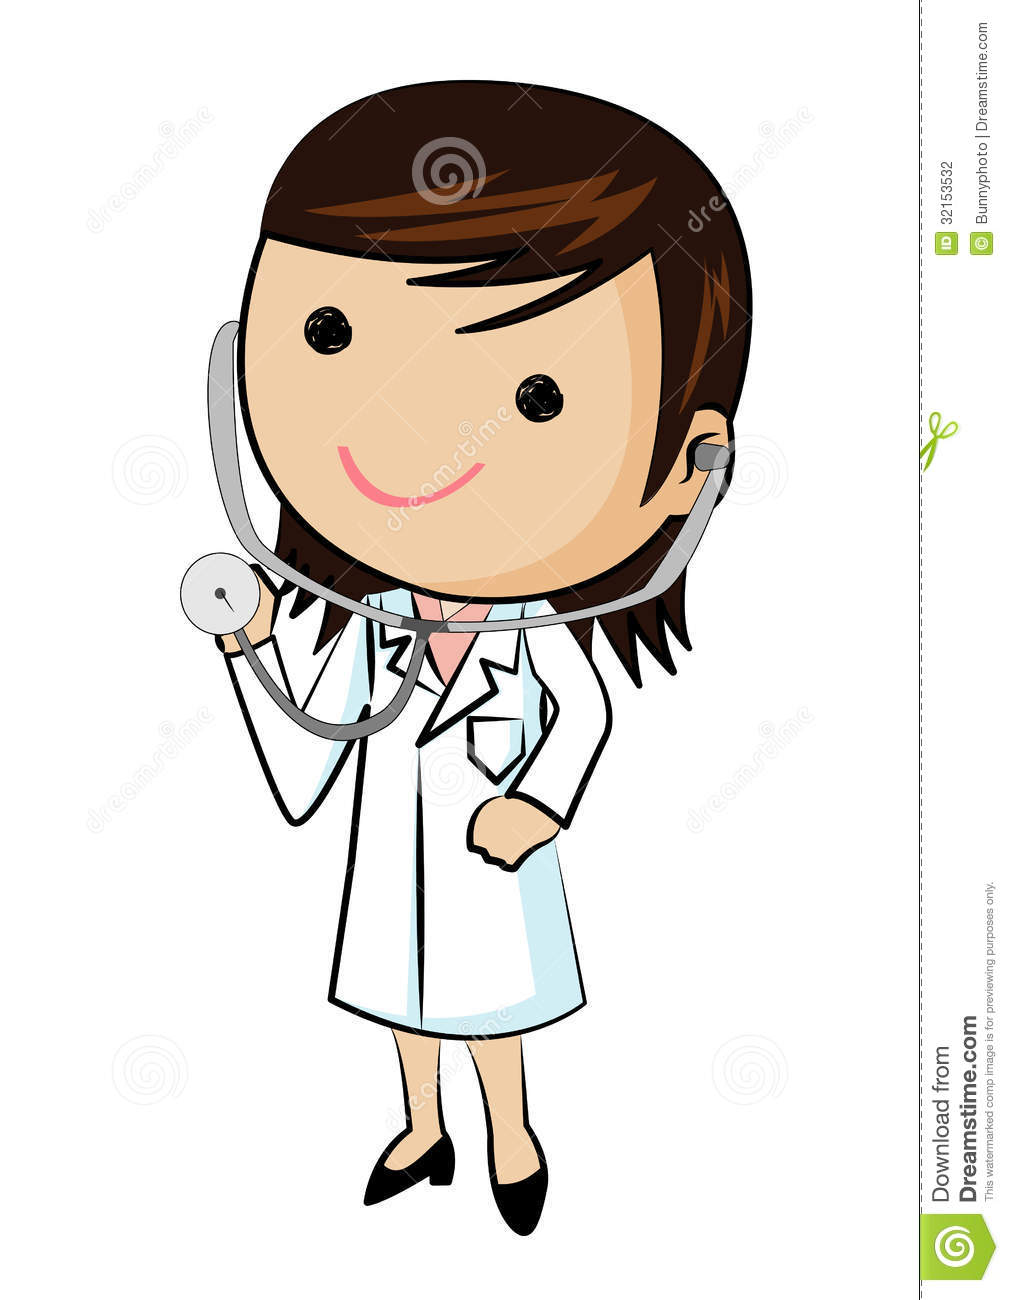 Free doctor clipart images svg black and white Doctor Clip Art Pictures | Clipart Panda - Free Clipart Images svg black and white